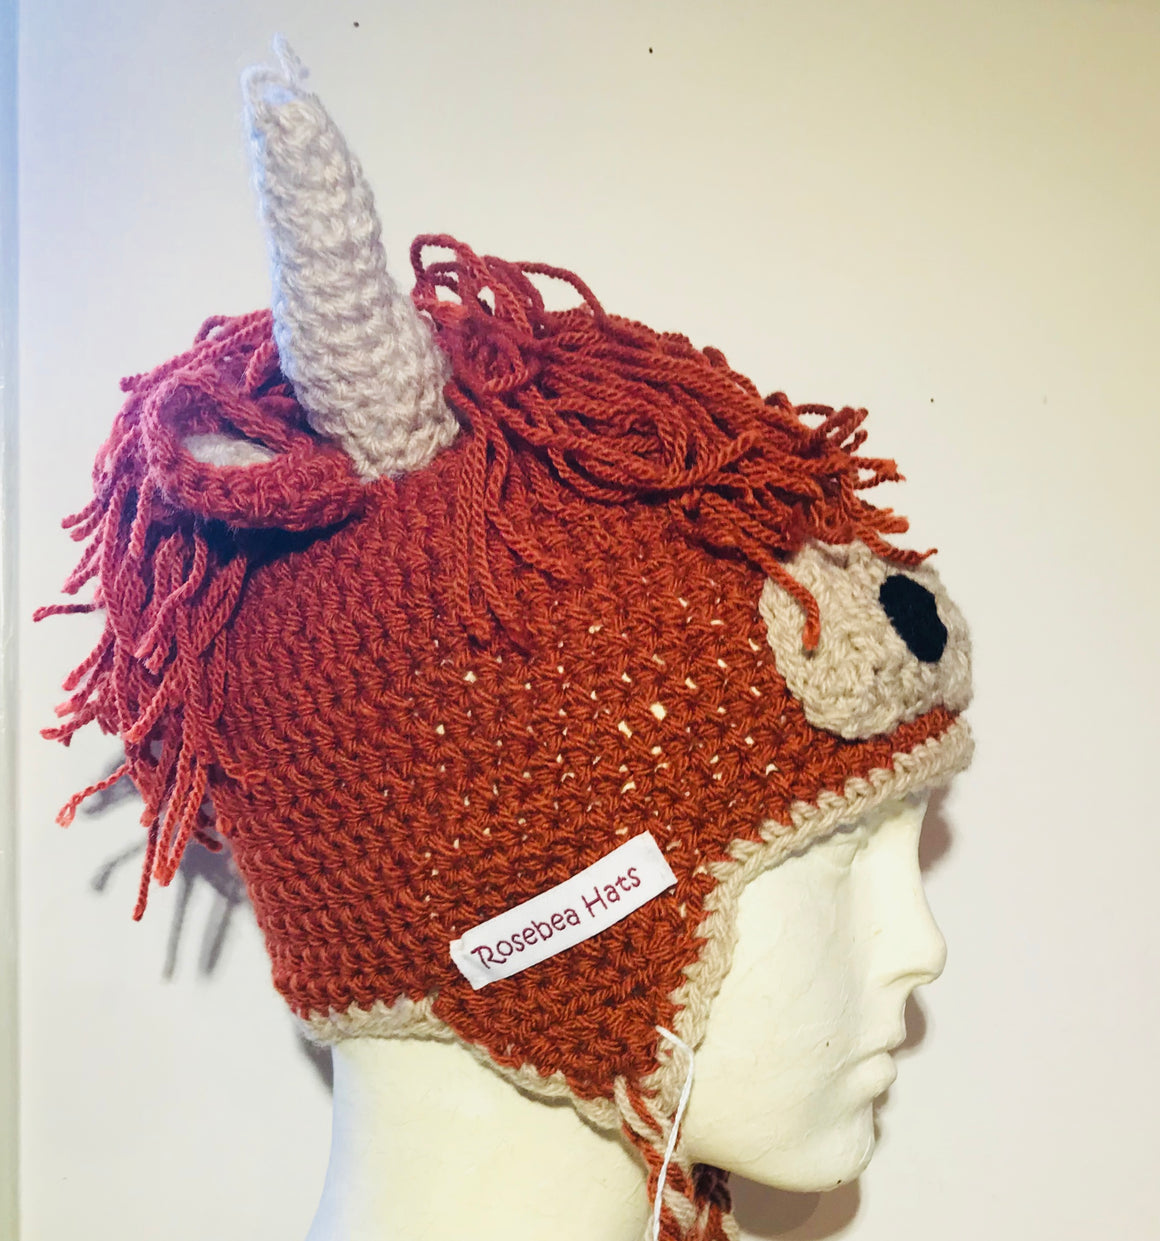 Highland Cow. Wool / acrylic knitted hat in red or black by Rosebea Hats.